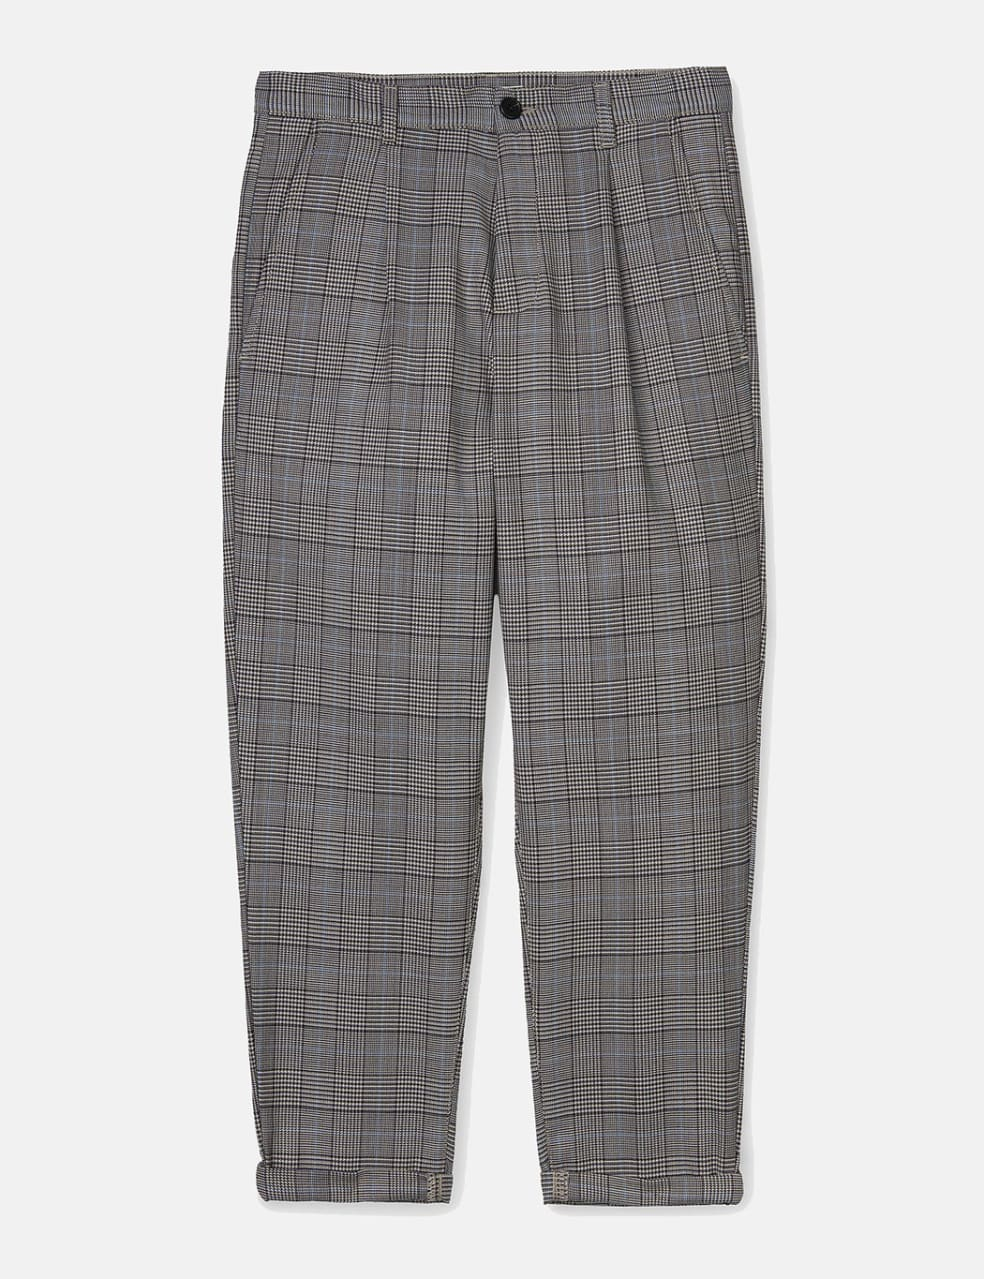 Womens Carhartt-WIP Pullman Ankle Pant - Glencheck Tobacco rigid | Trousers by Carhartt WIP 1